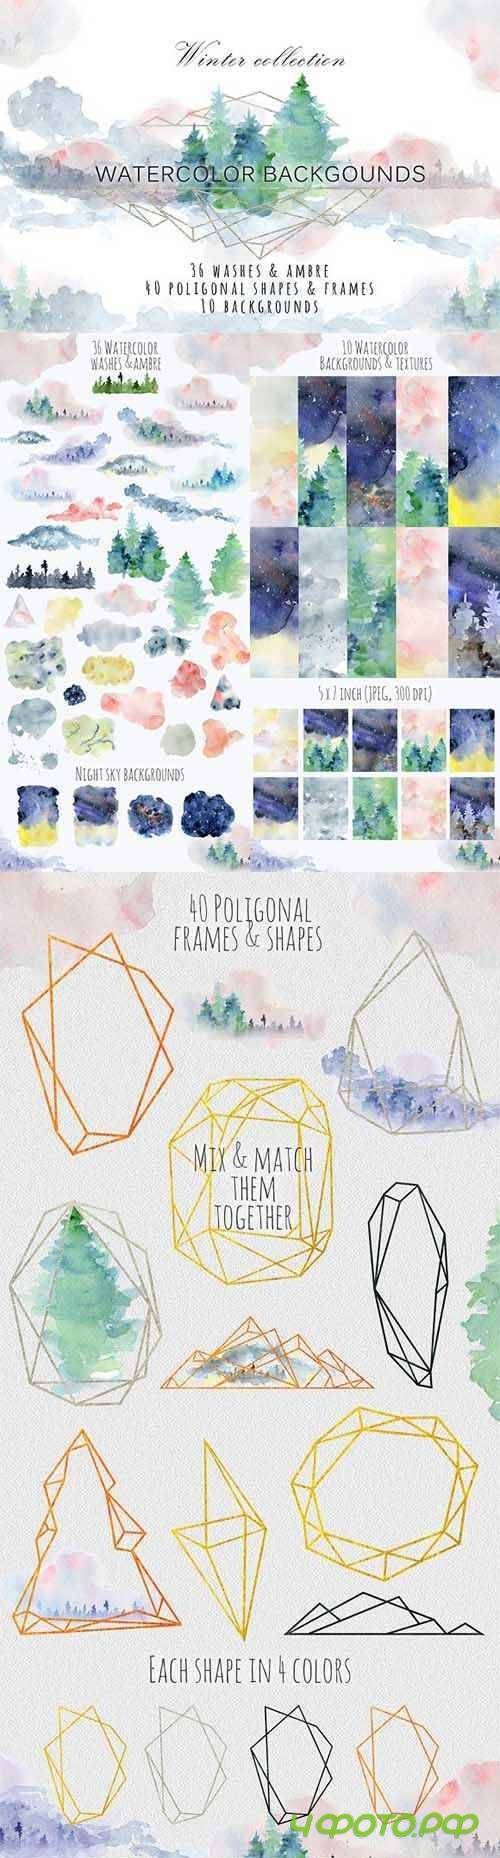 Winter watercolor backgrounds - 2088256